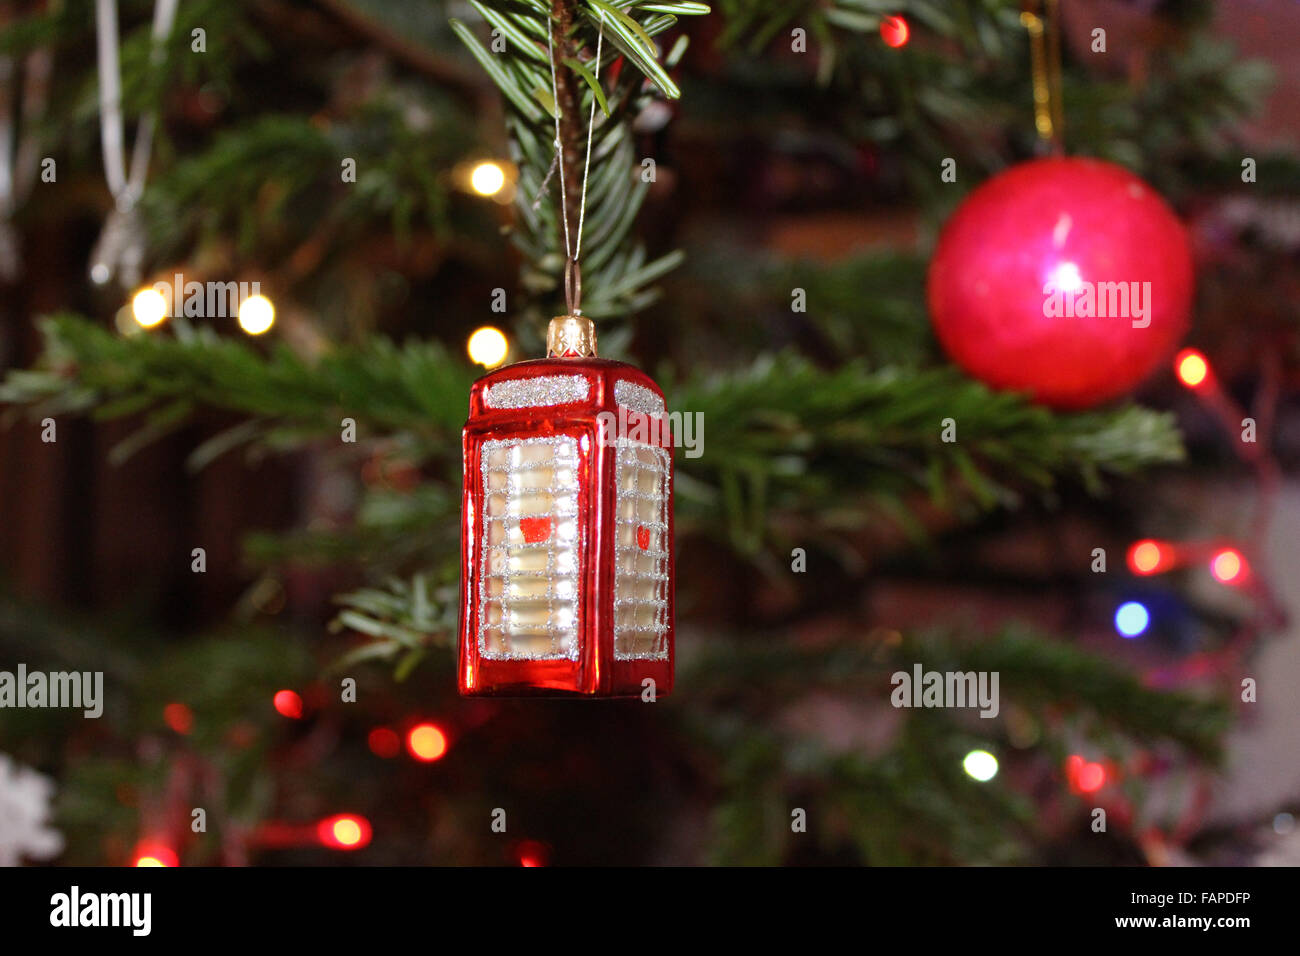 A Christmas decoration, in the form of red telephone box, hangs from a Christmas tree. - Stock Image